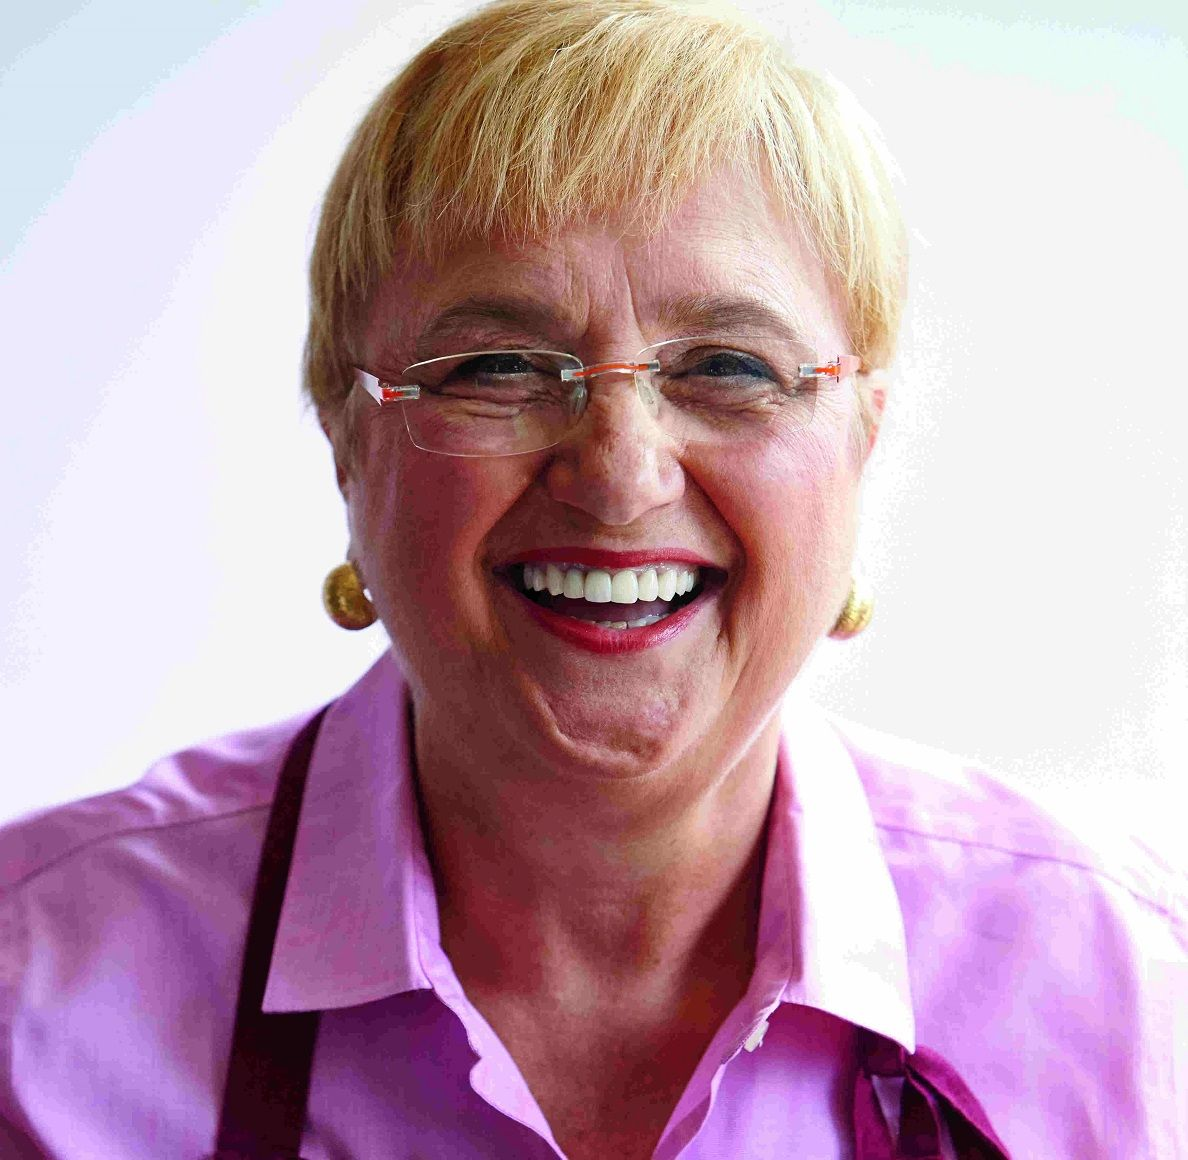 INC talks with celebrity chef, Lidia Bastianich